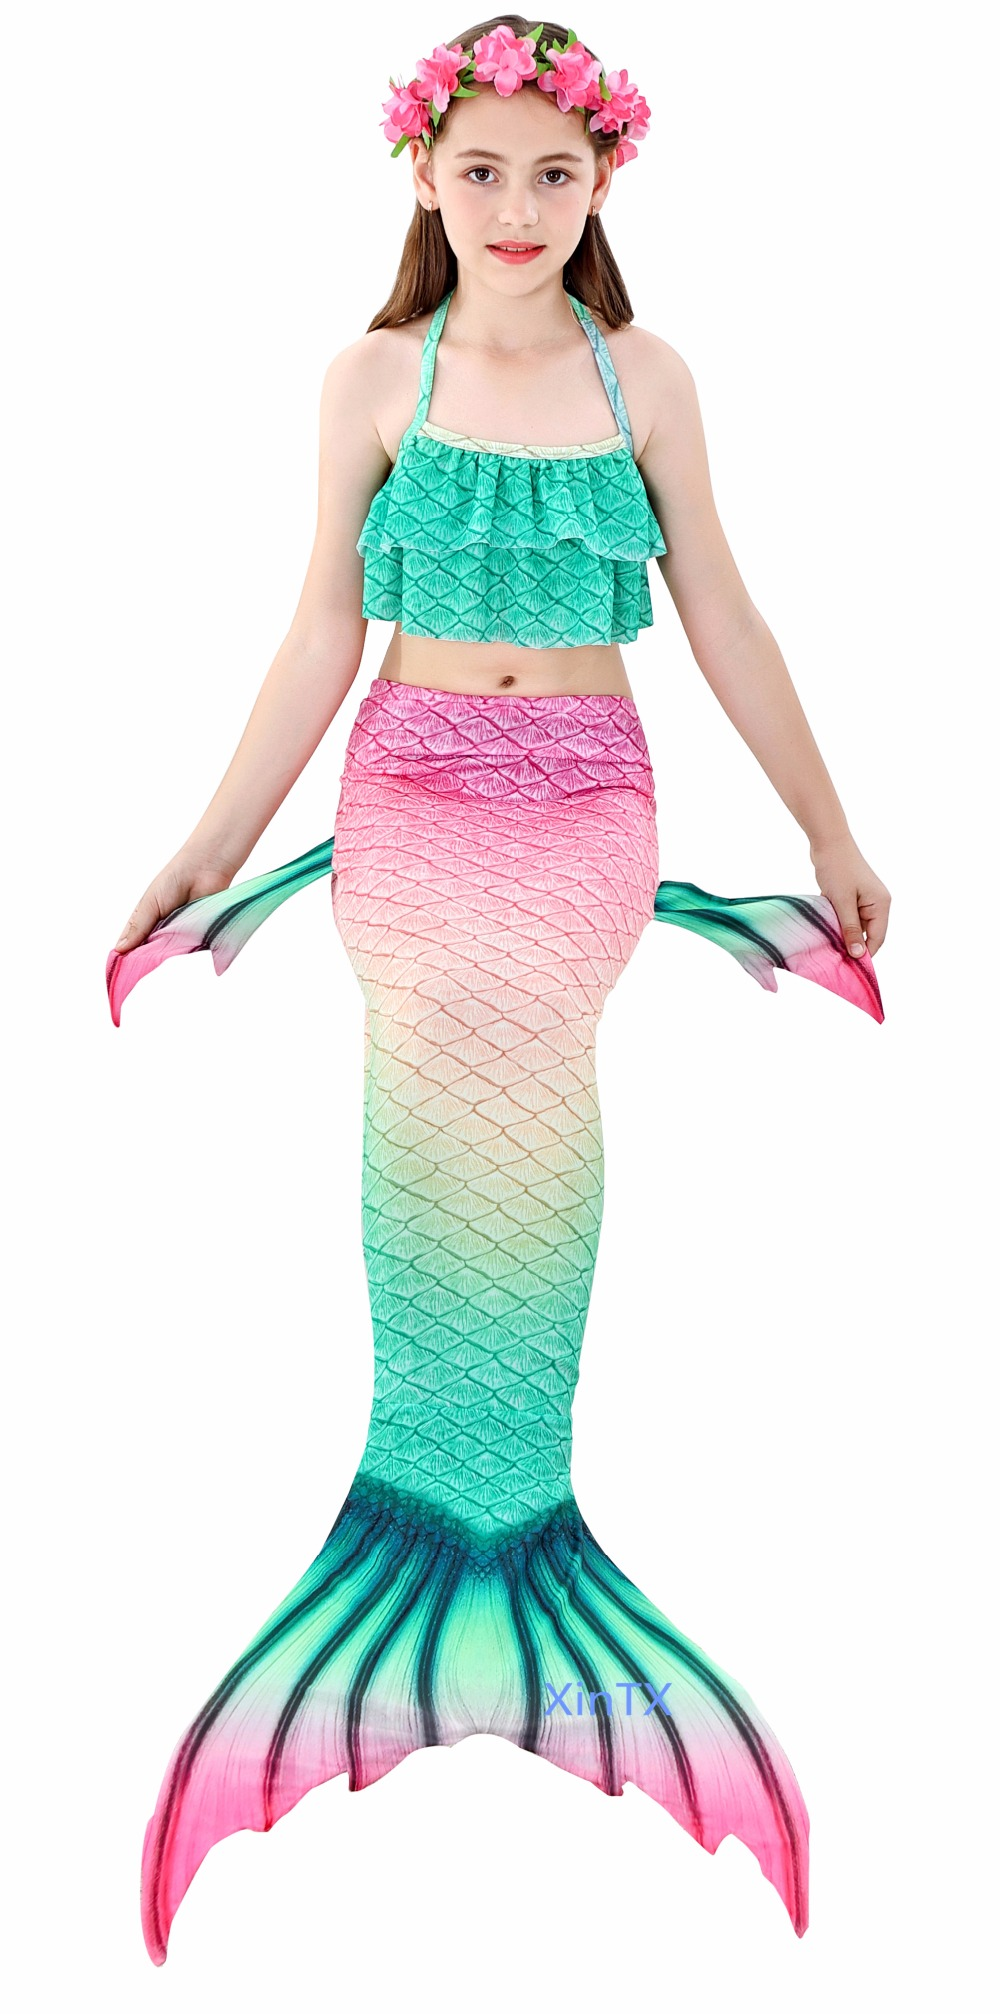 H422dc123521c4fba92857b0d32bbb5d57 - 4PCS/Set HOT Kids Girls Mermaid Tails with Fin Swimsuit Bikini Bathing Suit Dress for Girls With Flipper Monofin For Swim